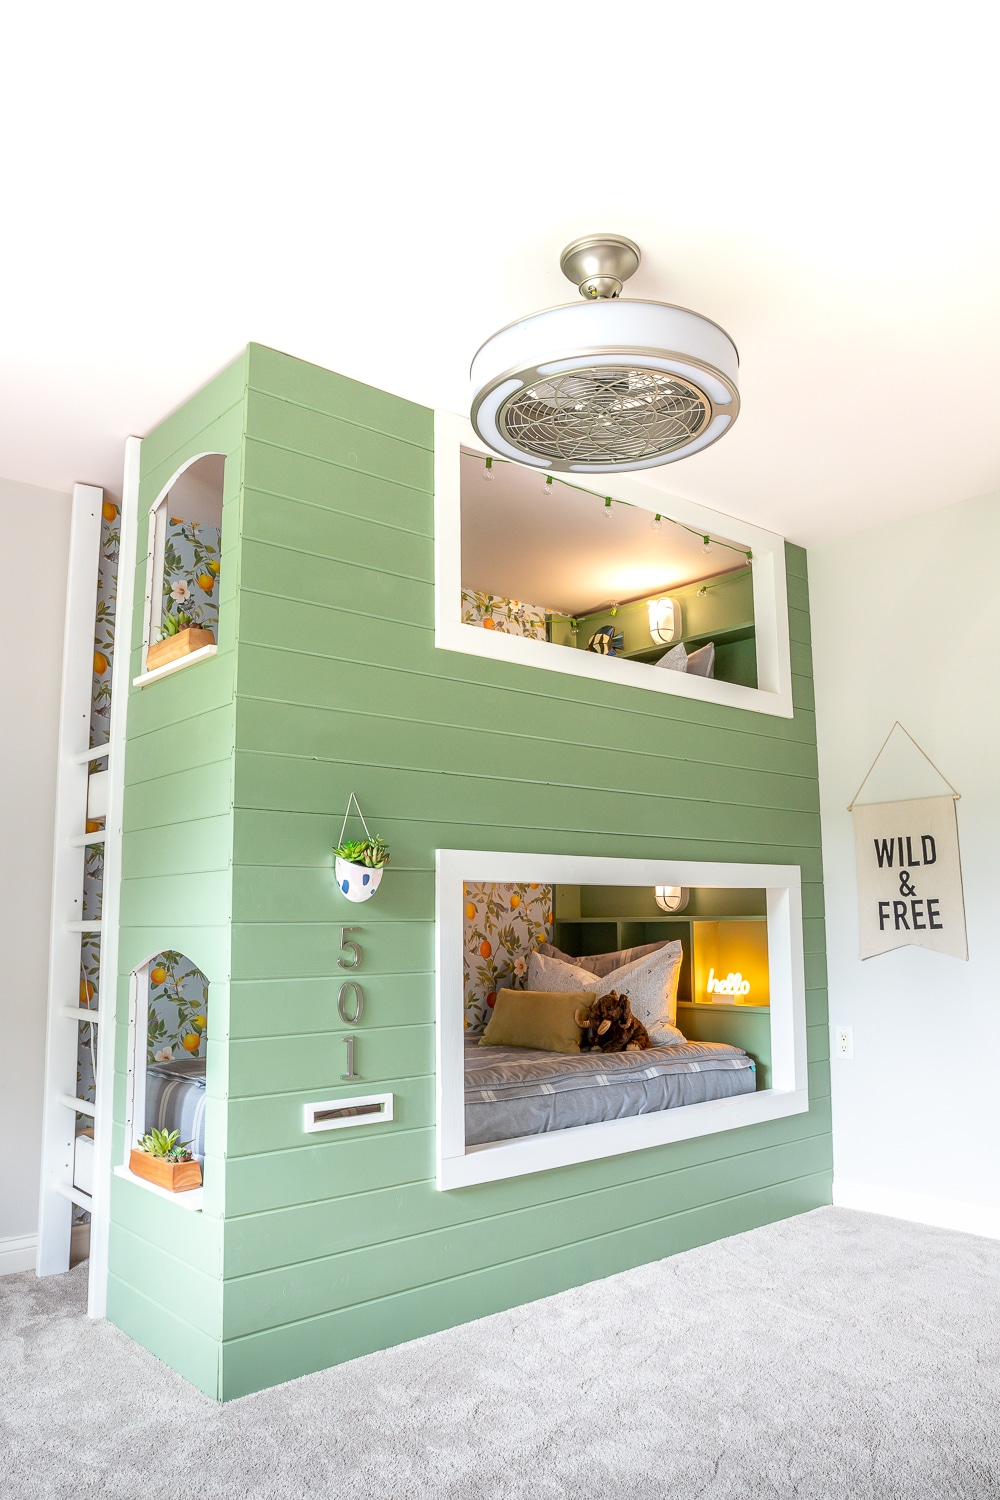 How to build a DIY kids built-in bunk bed with shelves